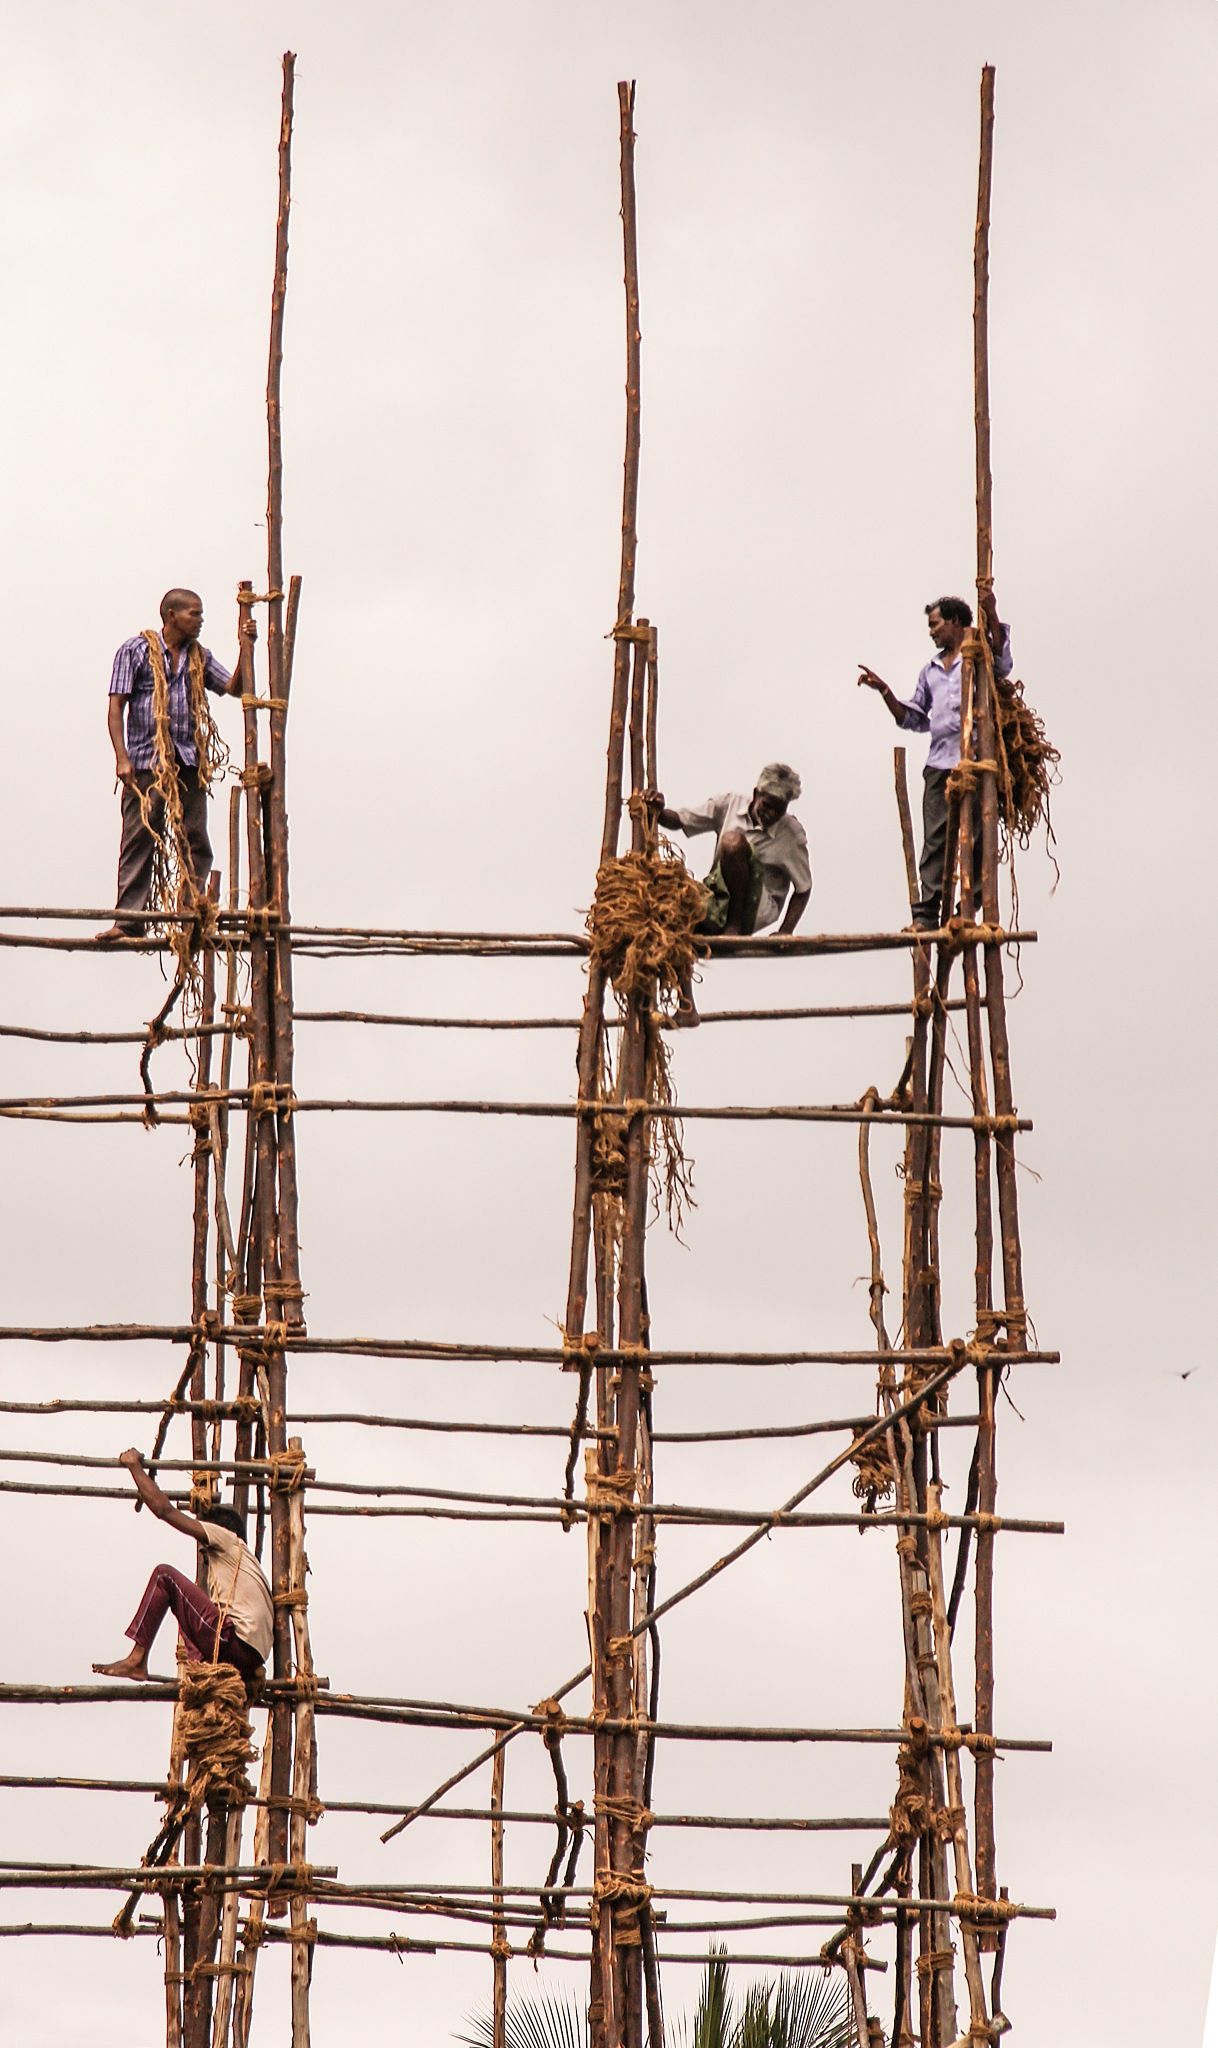 workers by Kamalakkannan